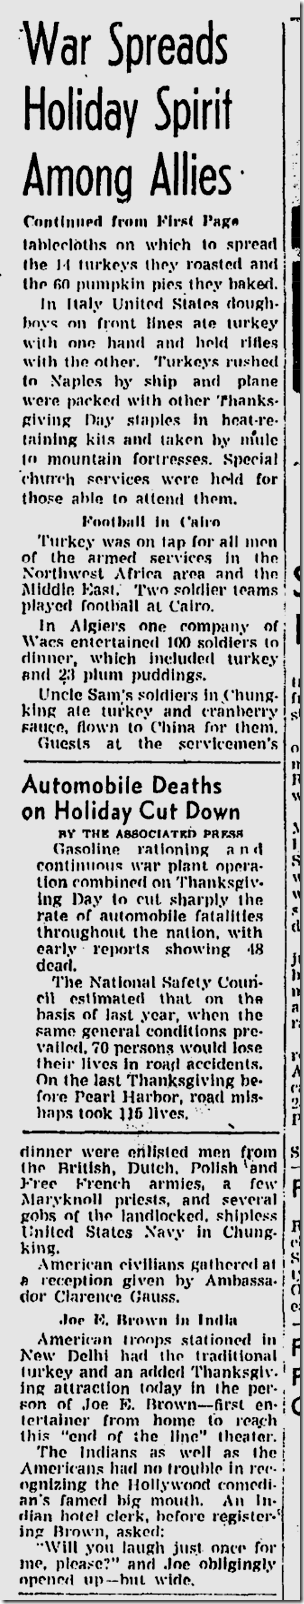 Nov. 26, 1943, Thanksgiving